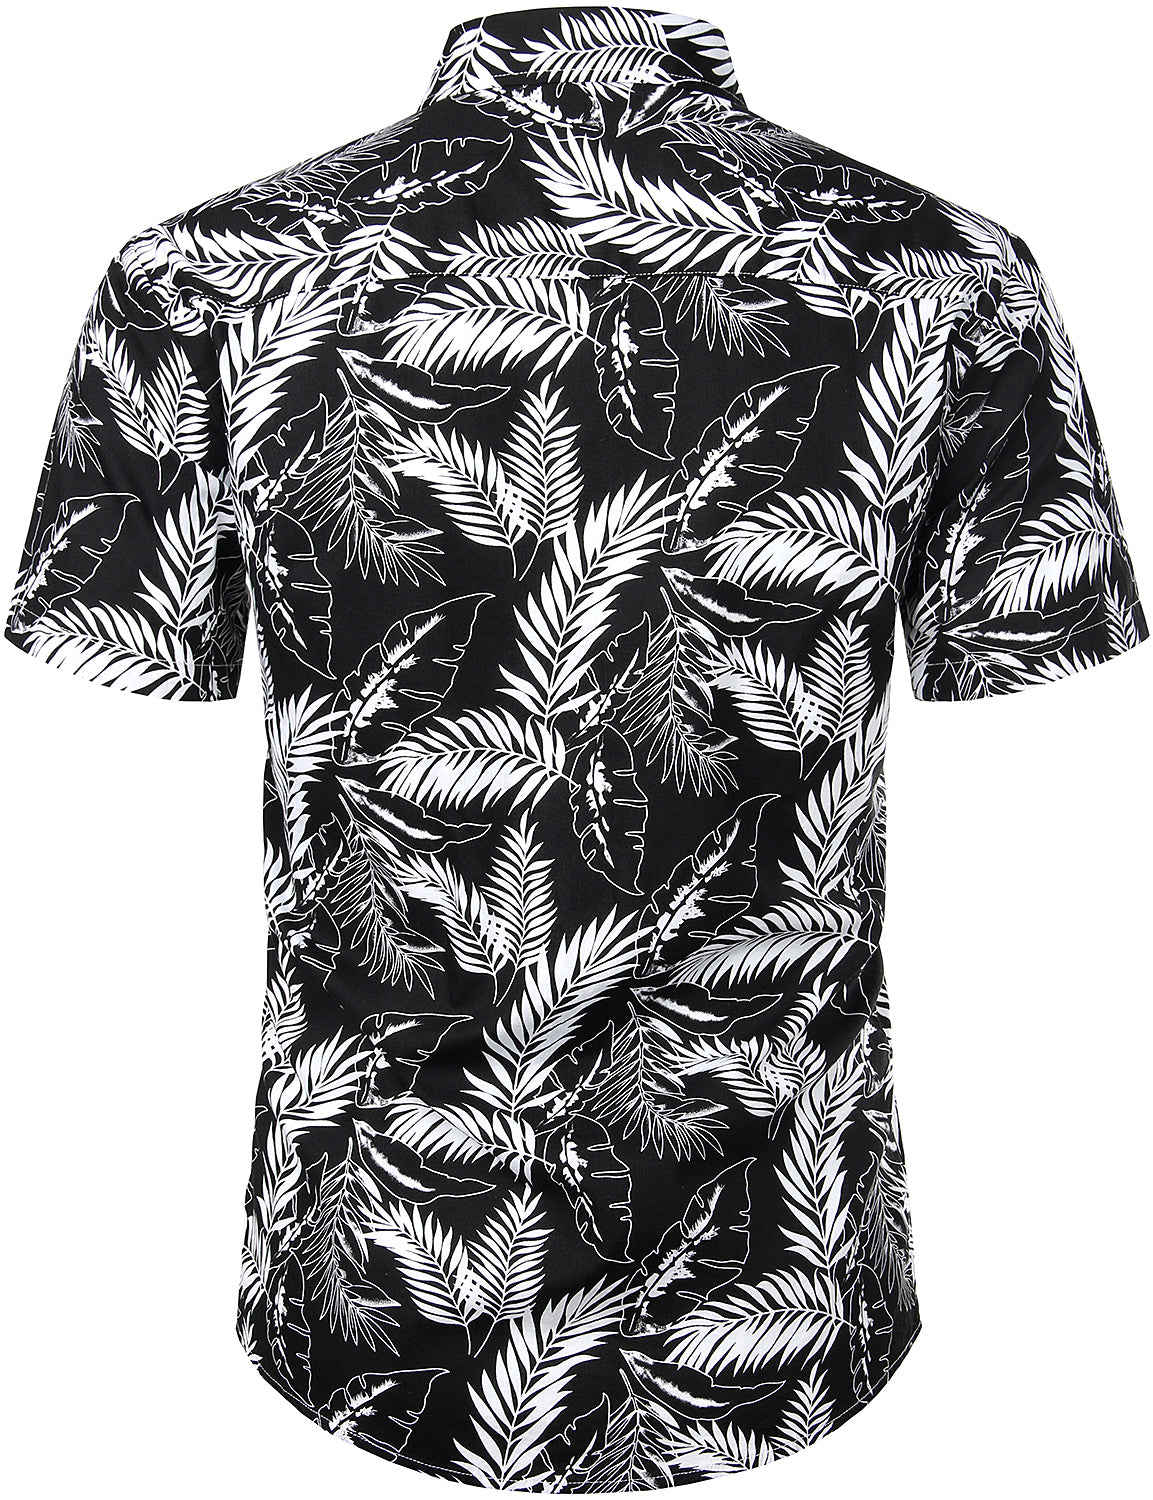 JOGAL Men's Flower Cotton Button Down Short Sleeve Hawaiian Shirt(BlackLineLeaf)